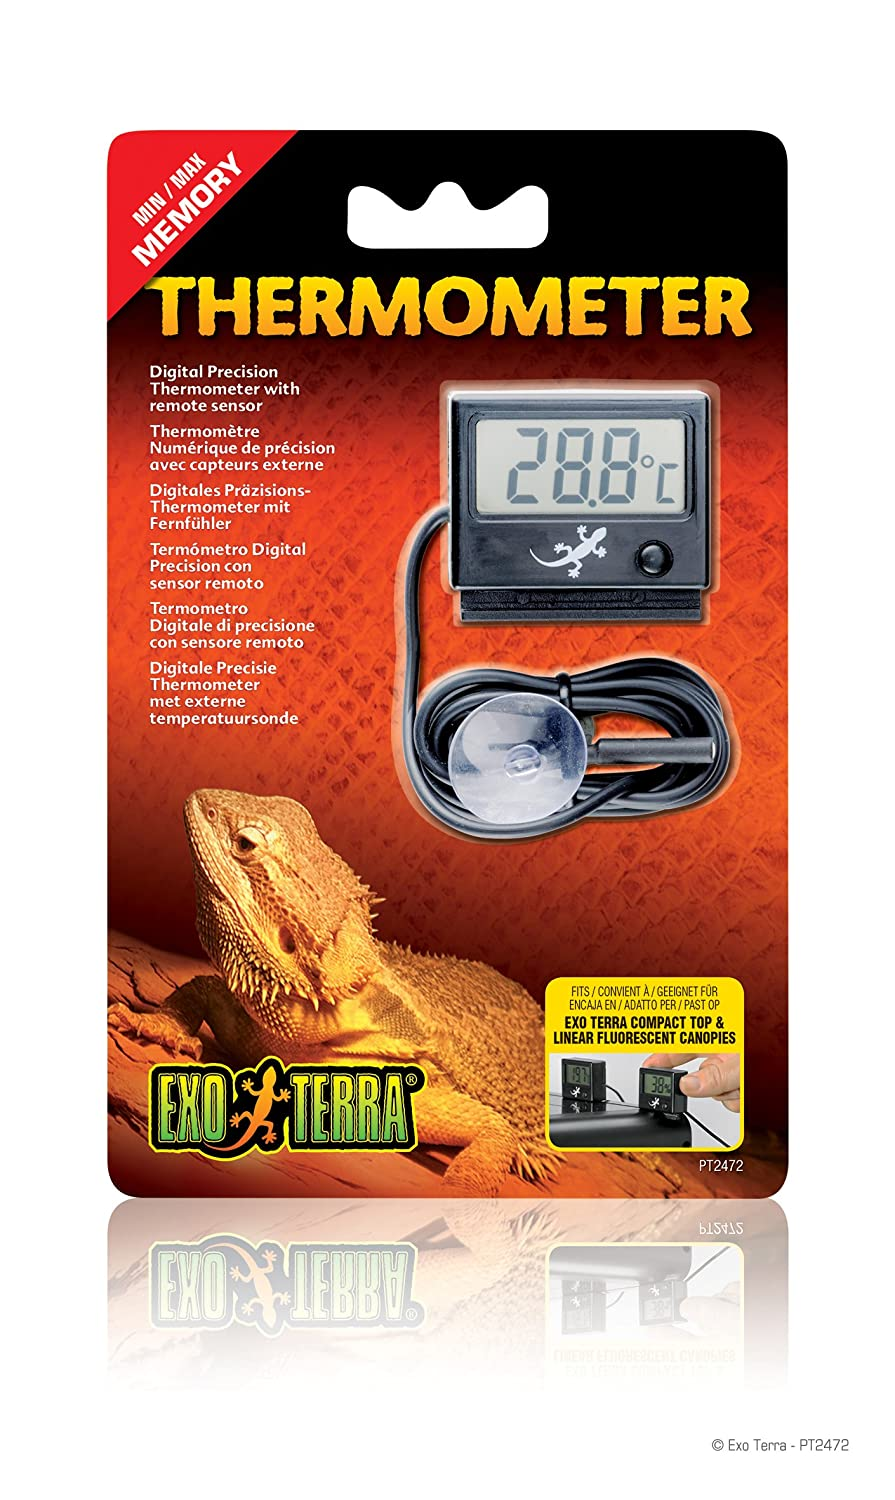 Exo Terra Digital Thermometer with Probe, Celsius and Fahrenheit PT2472